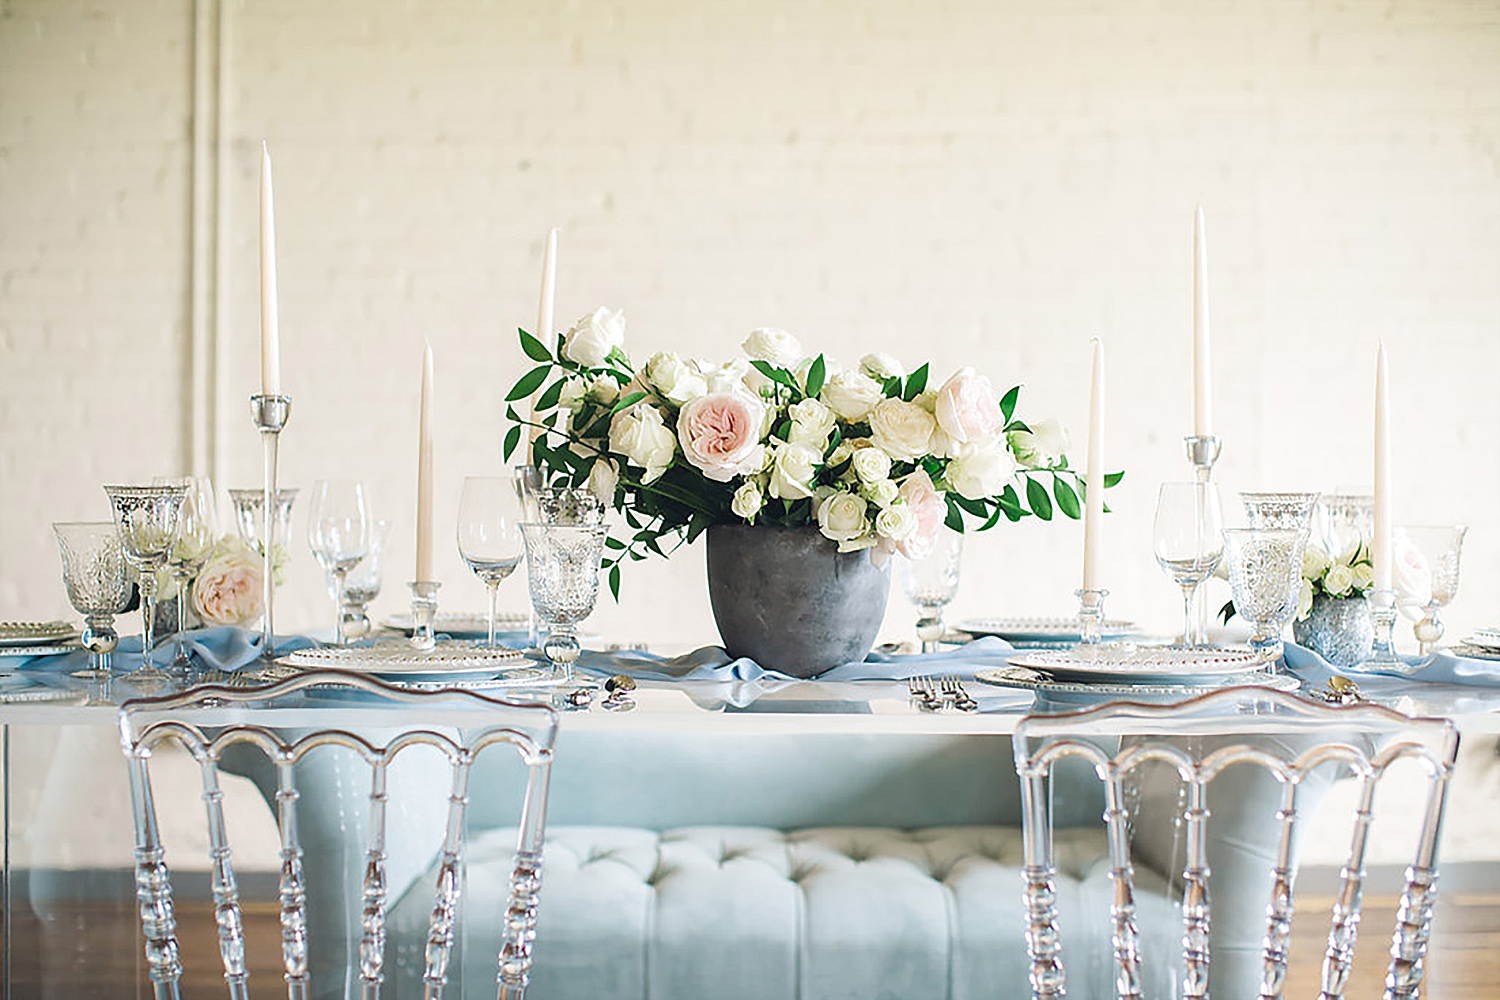 White flowers in a concrete vase on a acrylic table with ghost chairs